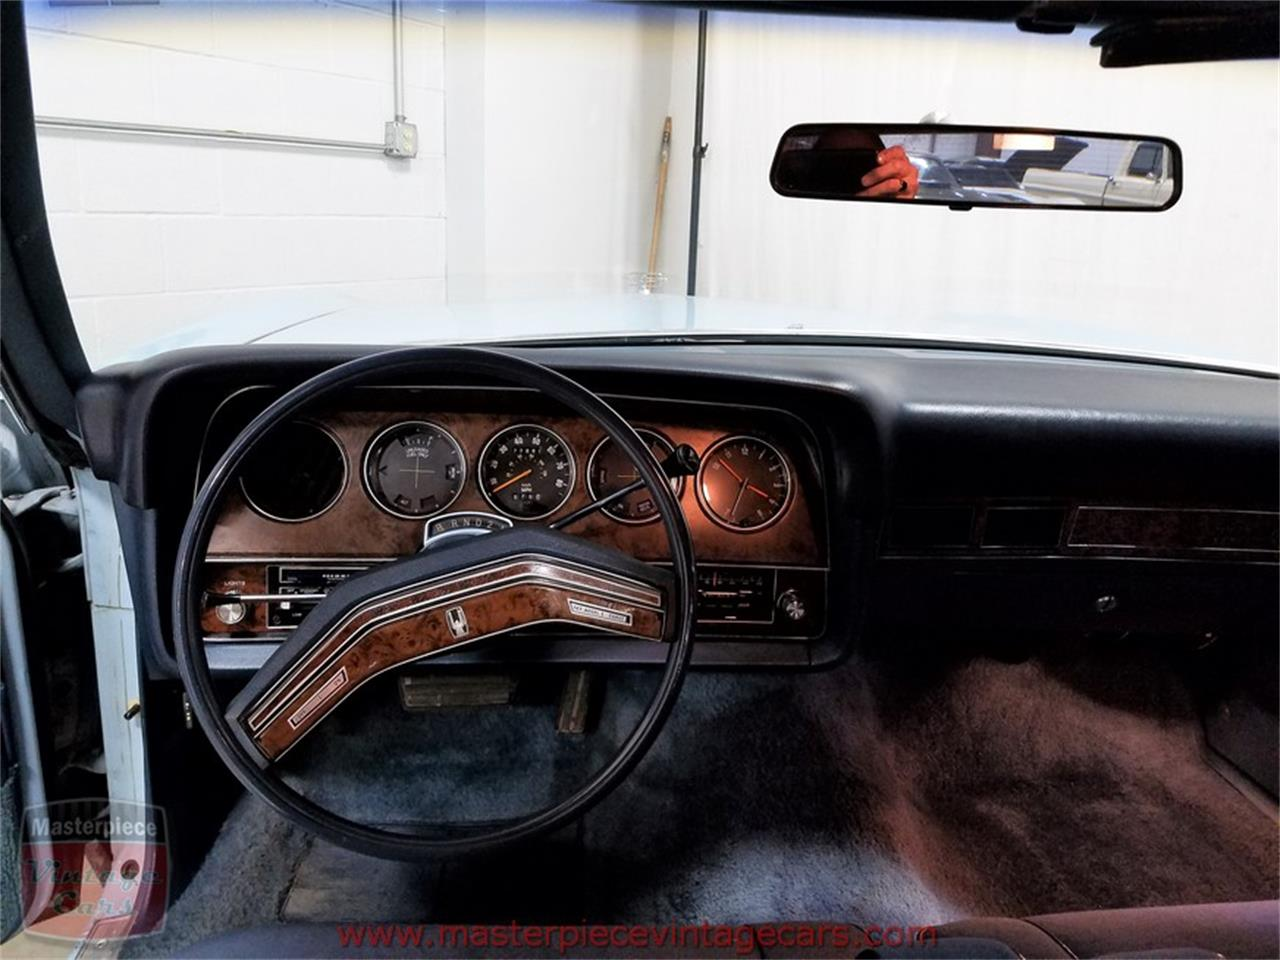 Large Picture of 1979 Ford Thunderbird - $6,950.00 Offered by Masterpiece Vintage Cars - KV4O